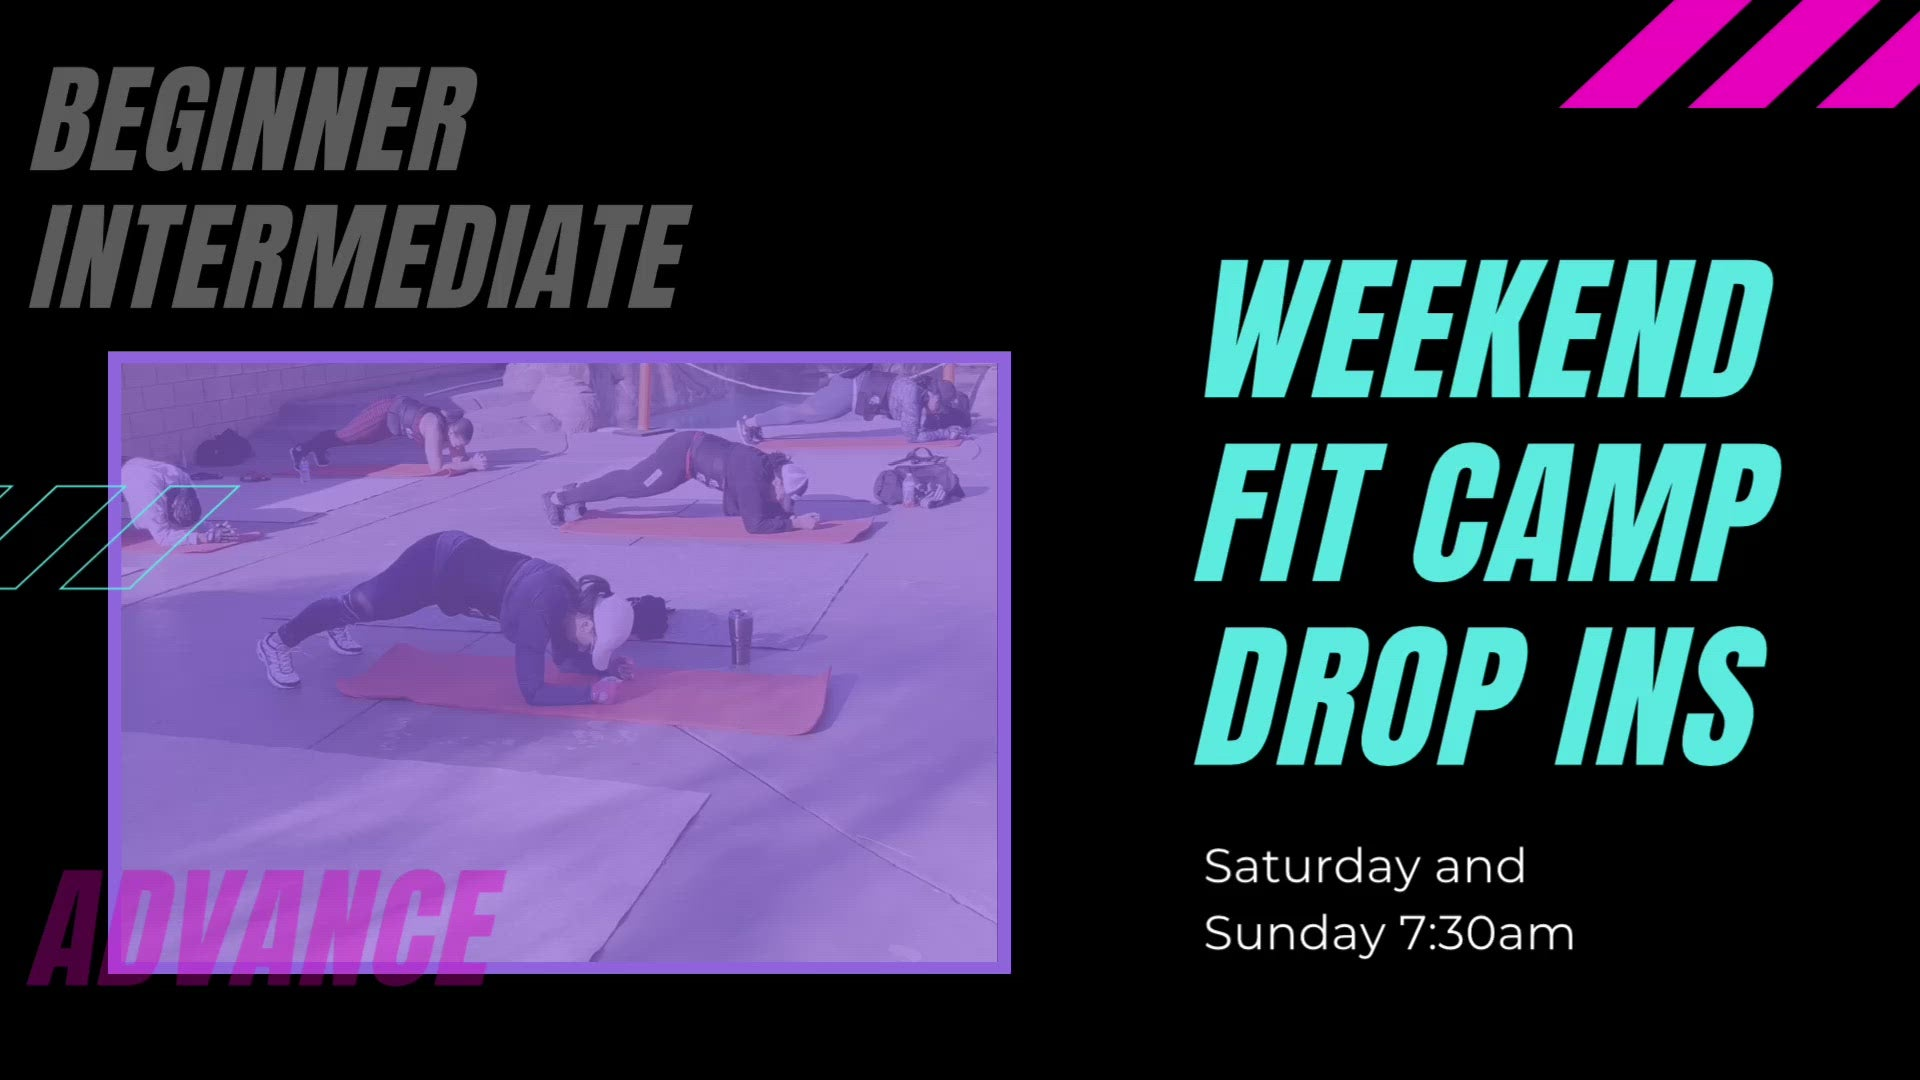 Weekend Fit Camp Drop Ins